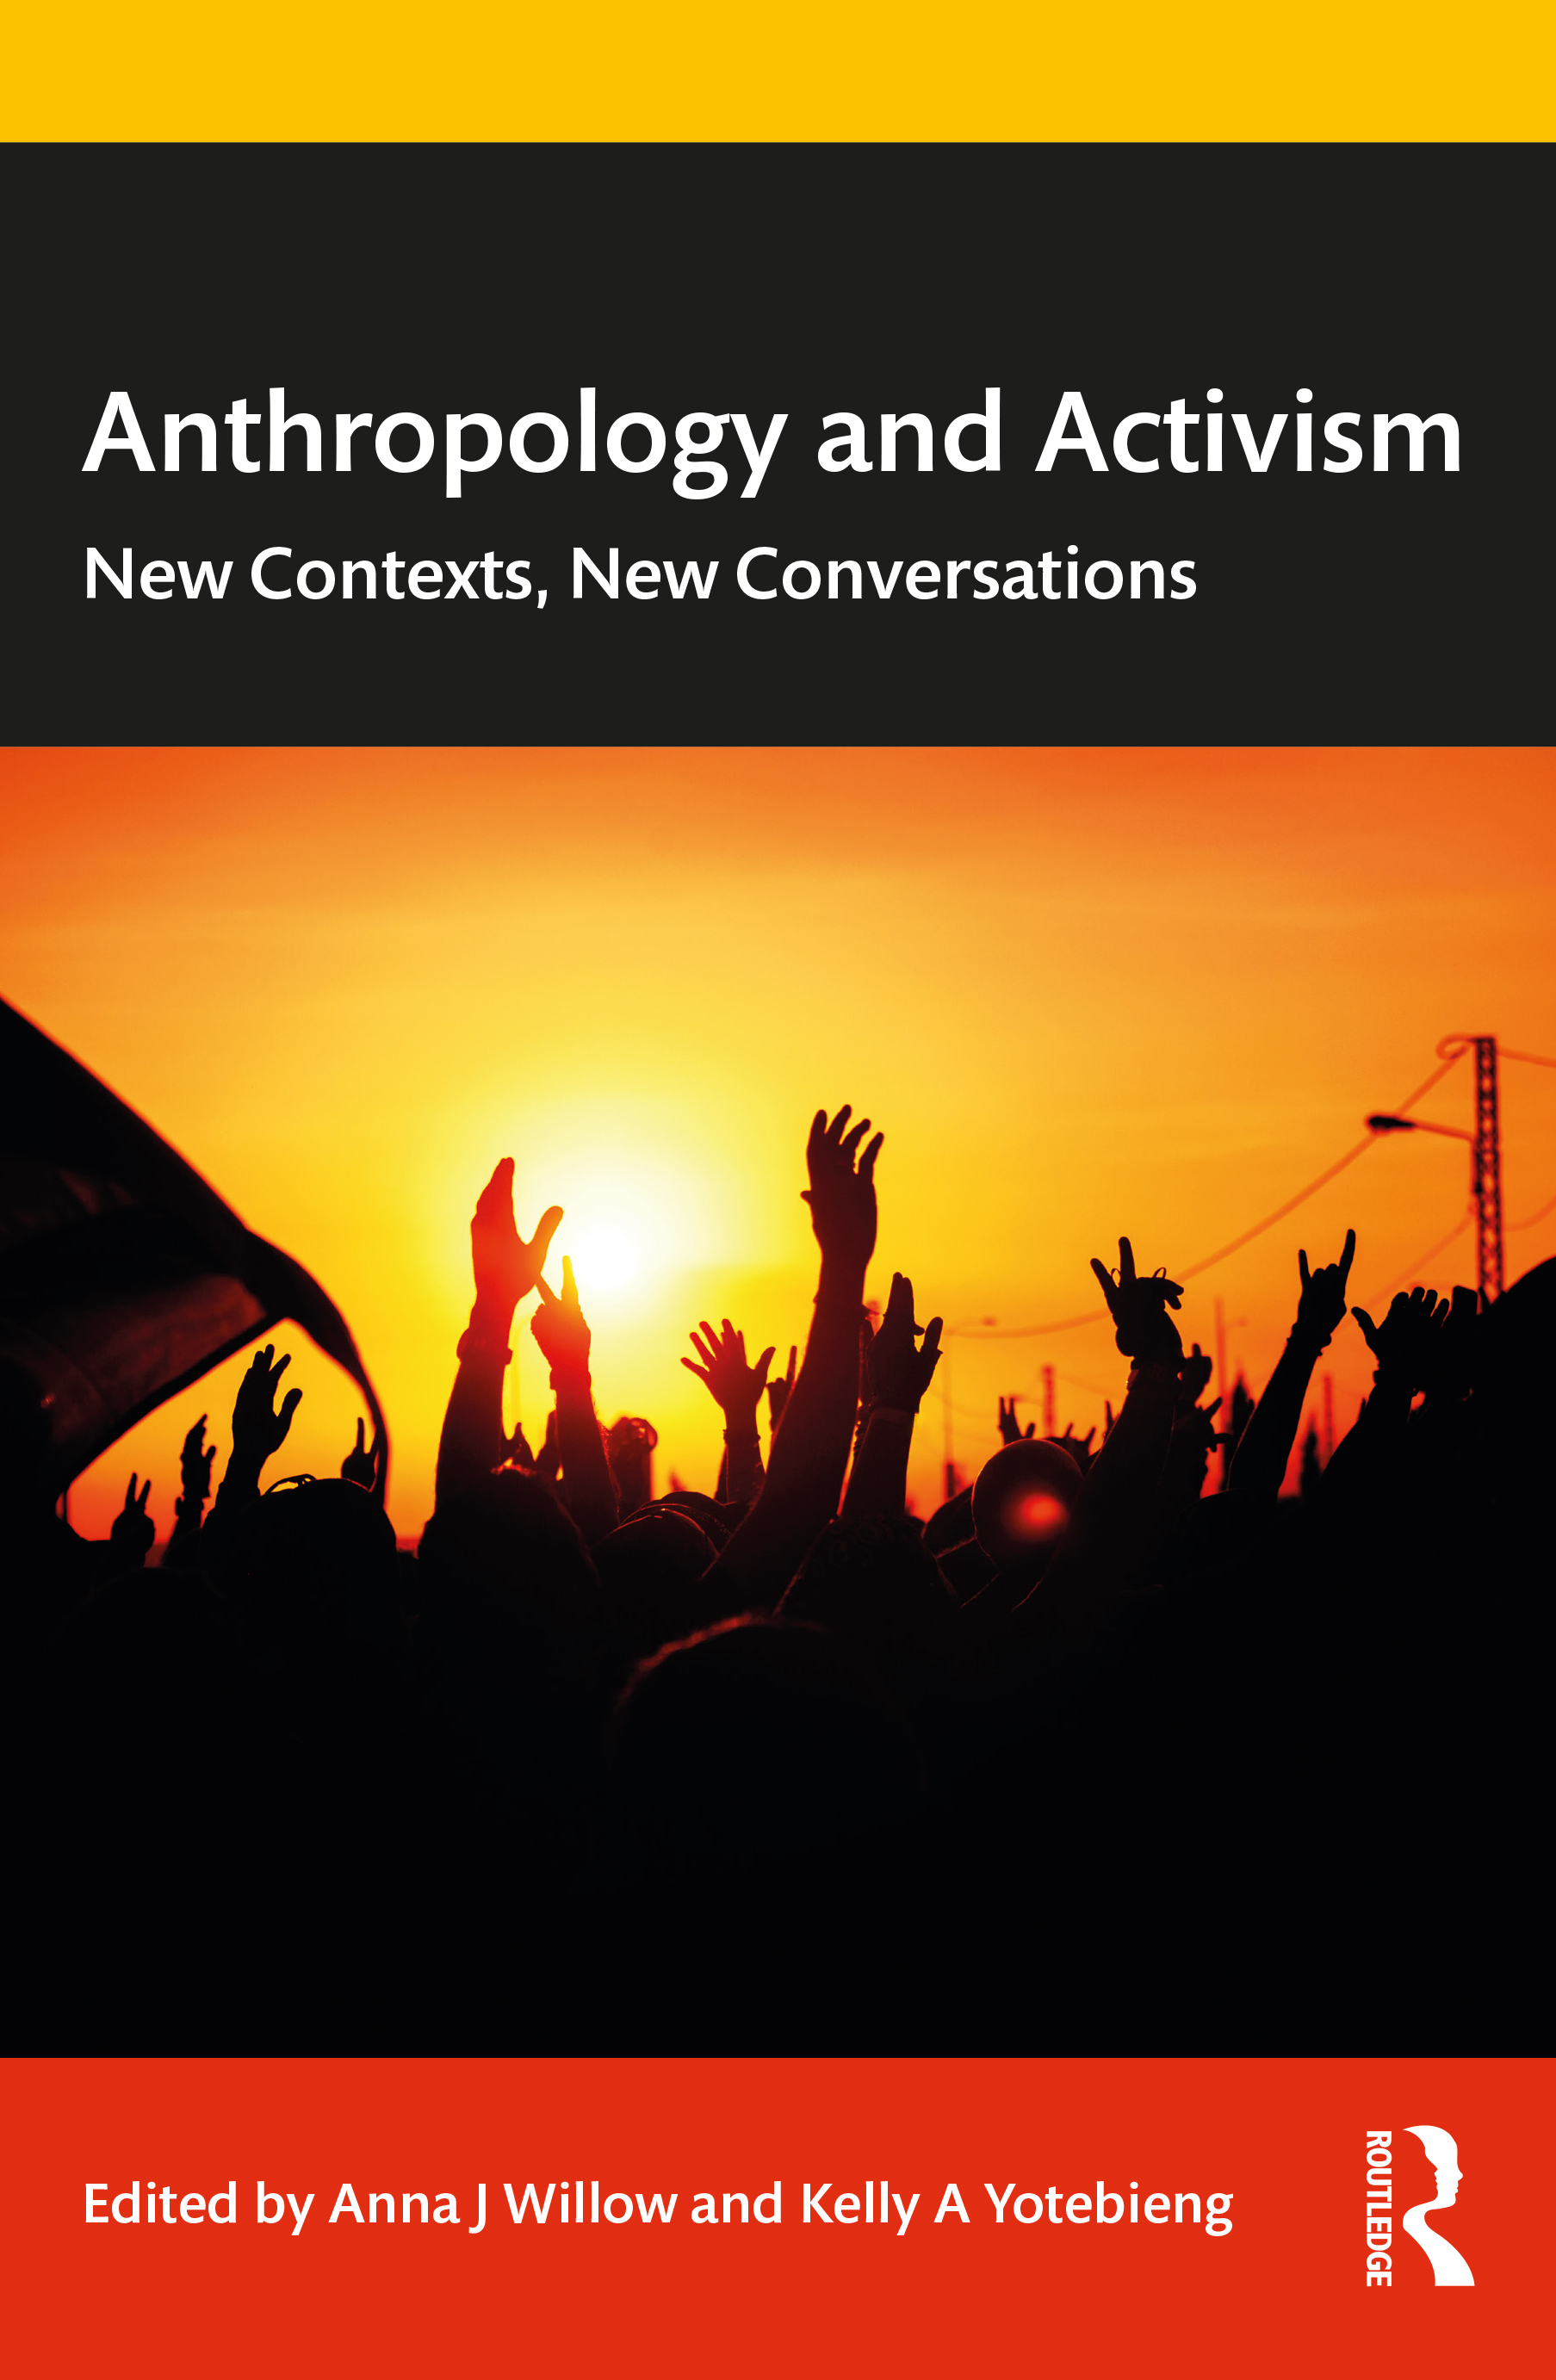 Anthropology and Activism